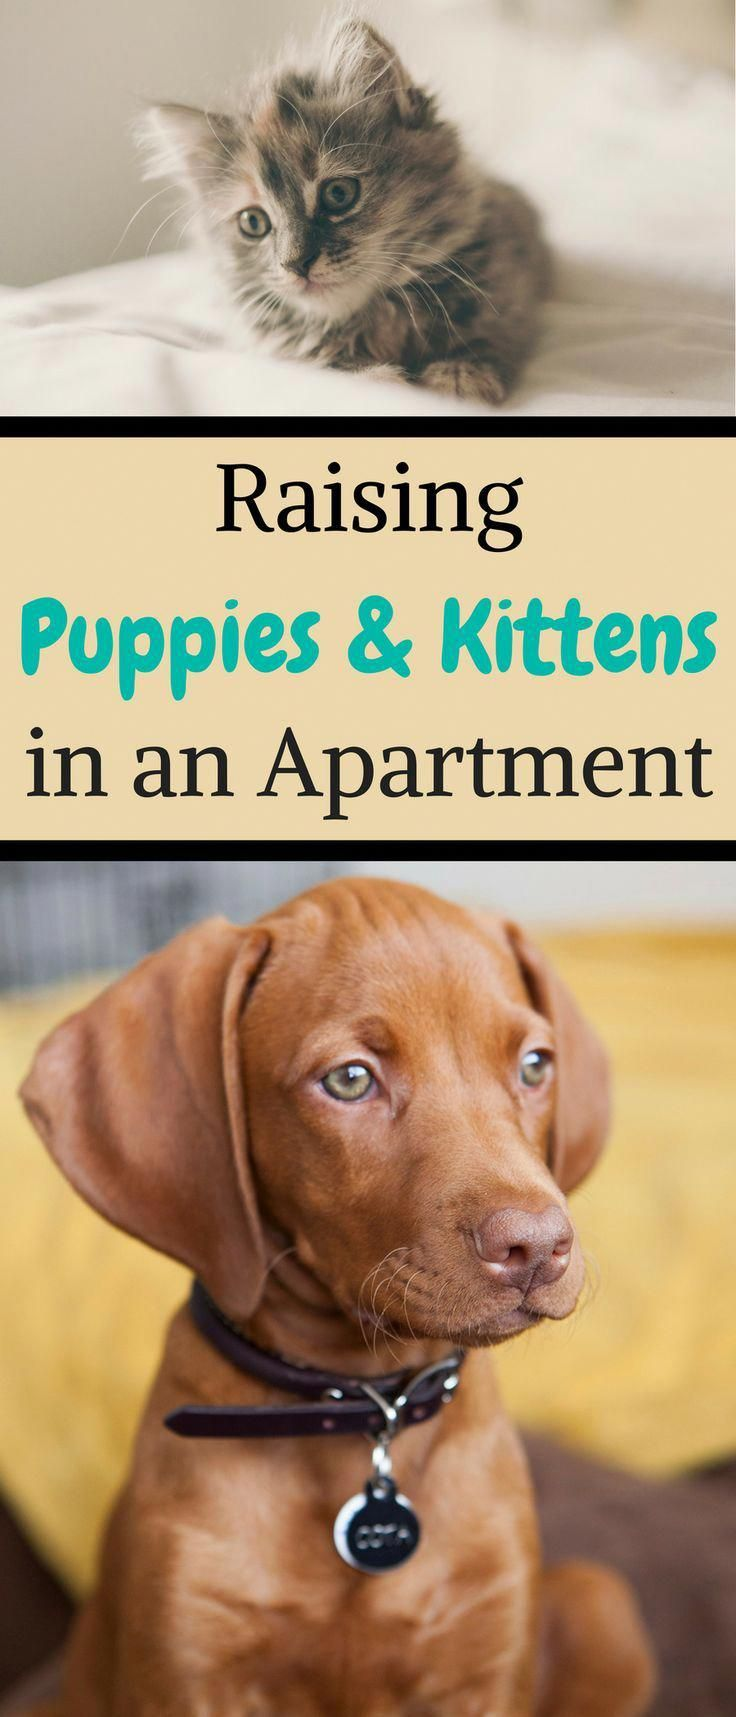 How To Raise Puppies And Kittens In An Apartment How To Potty